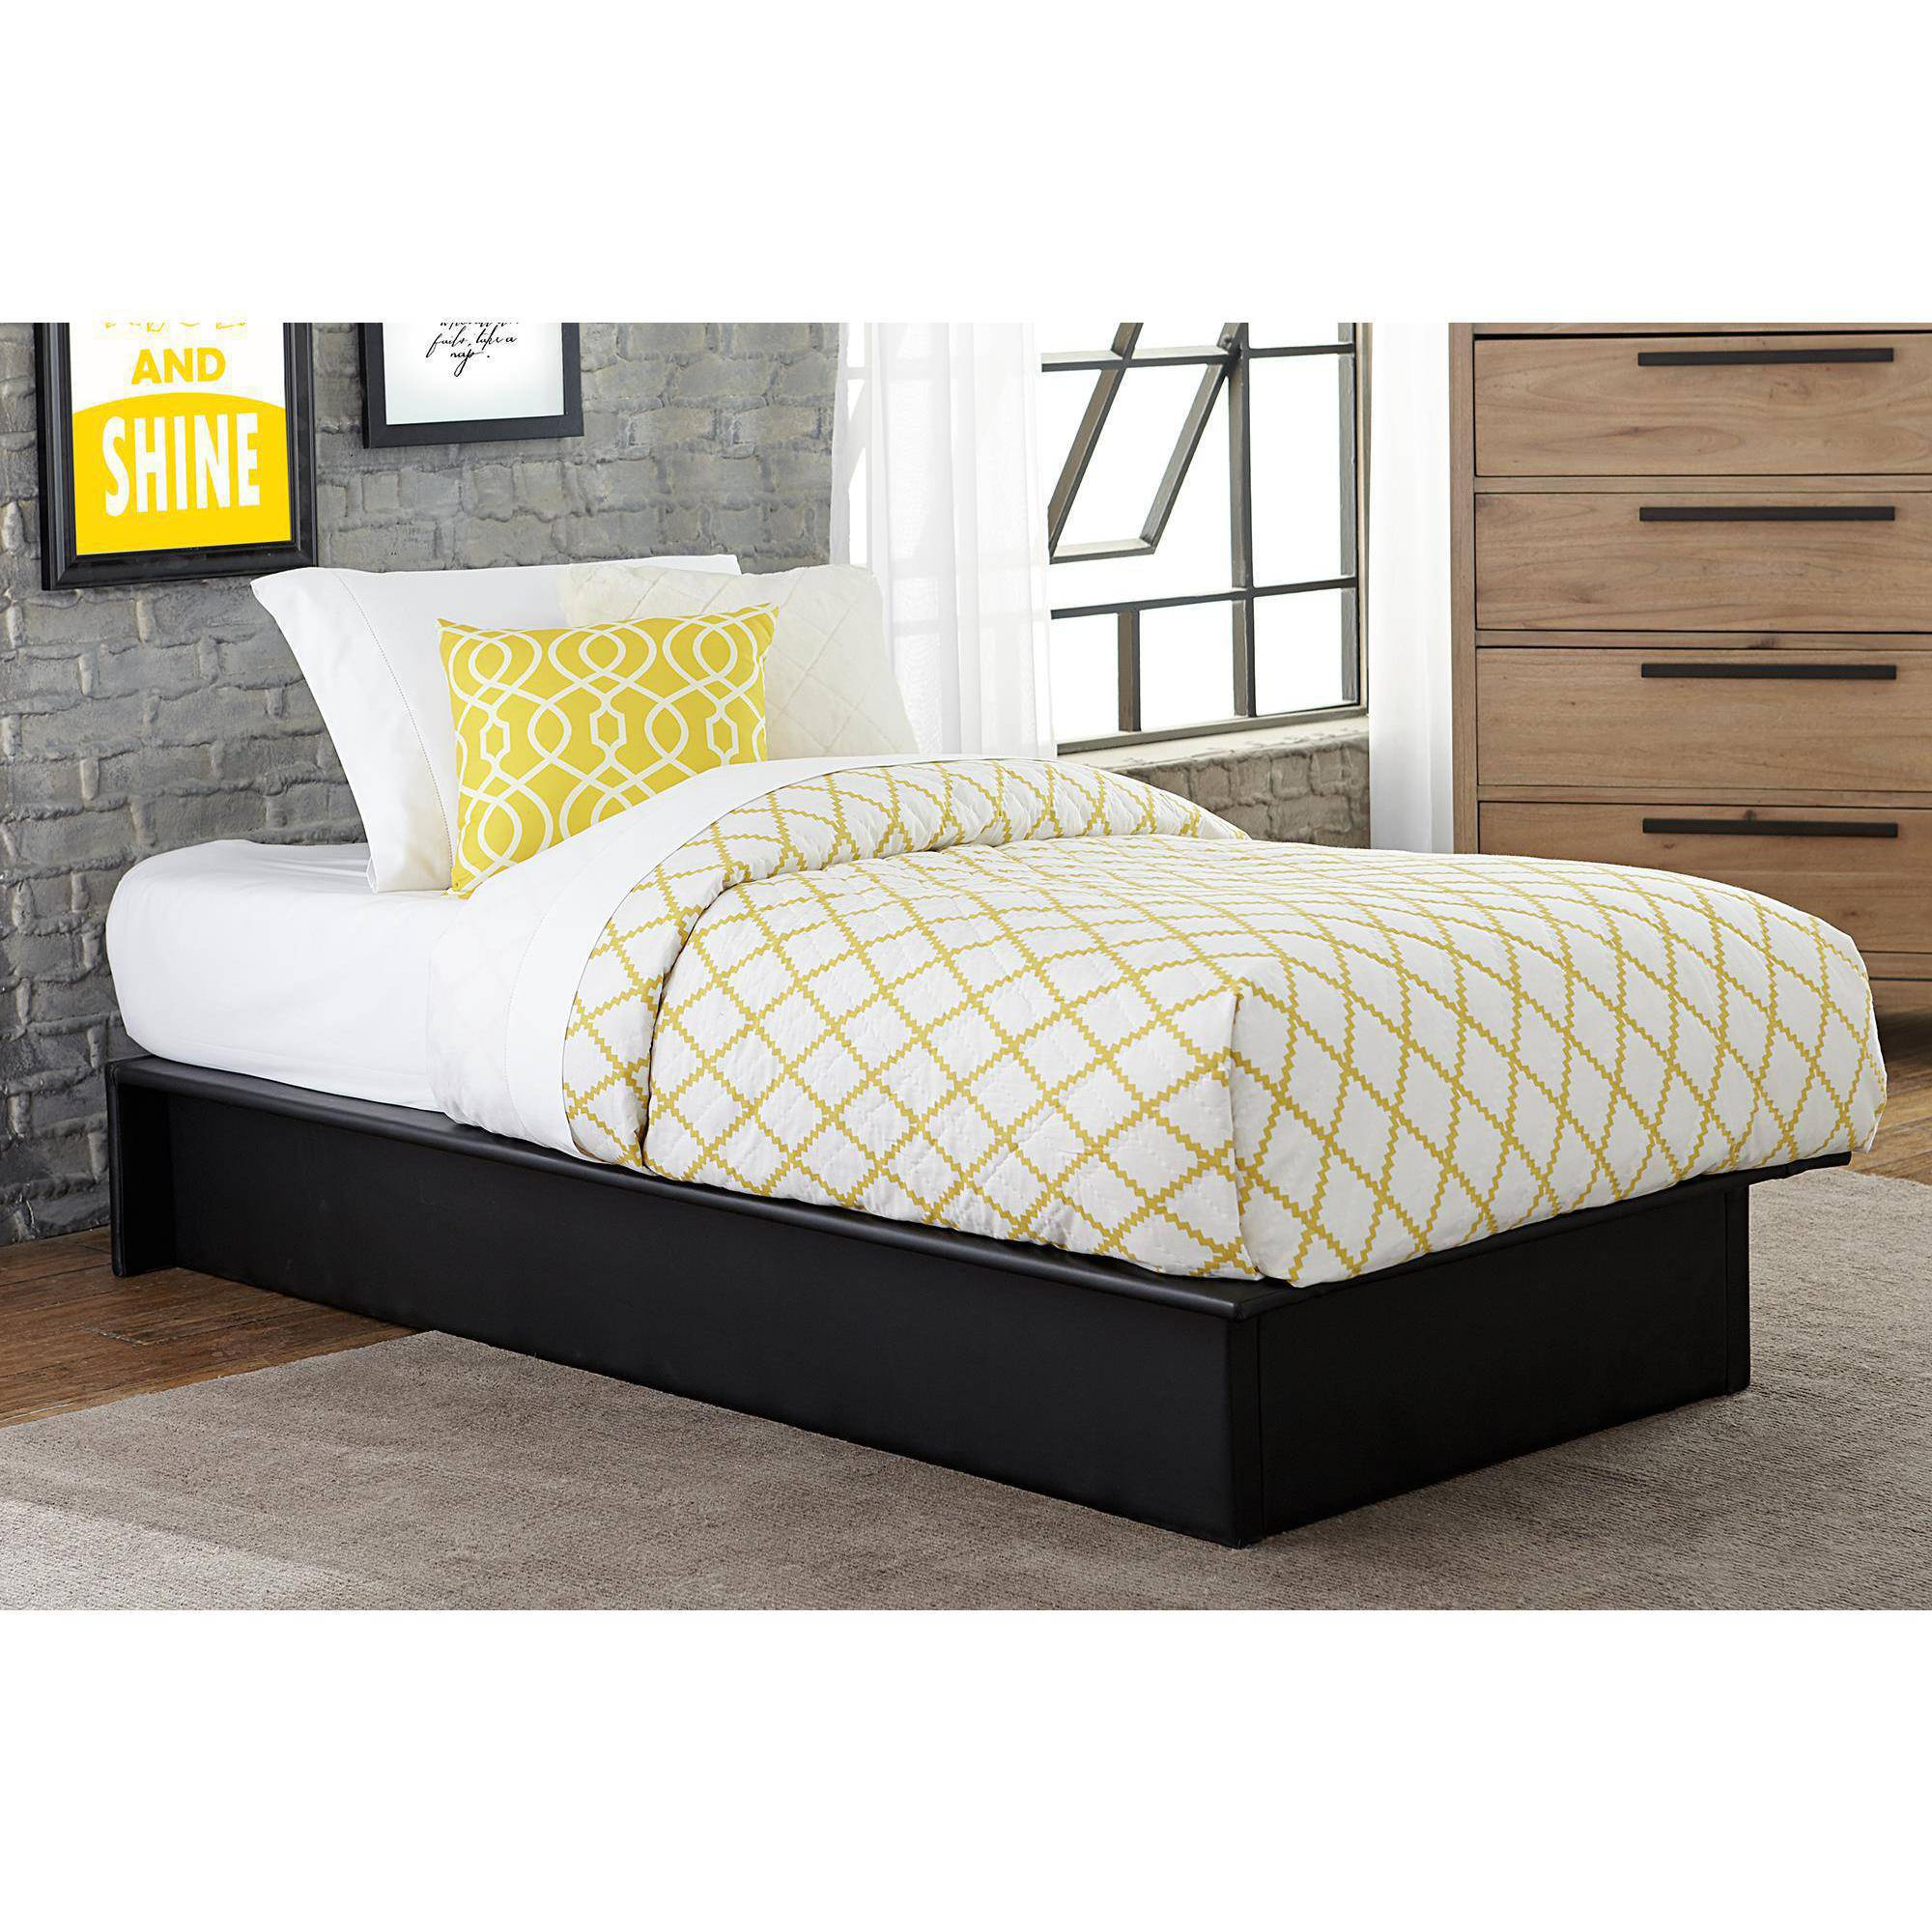 Maven Upholstered Platform Bed, Multiple Sizes and Colors